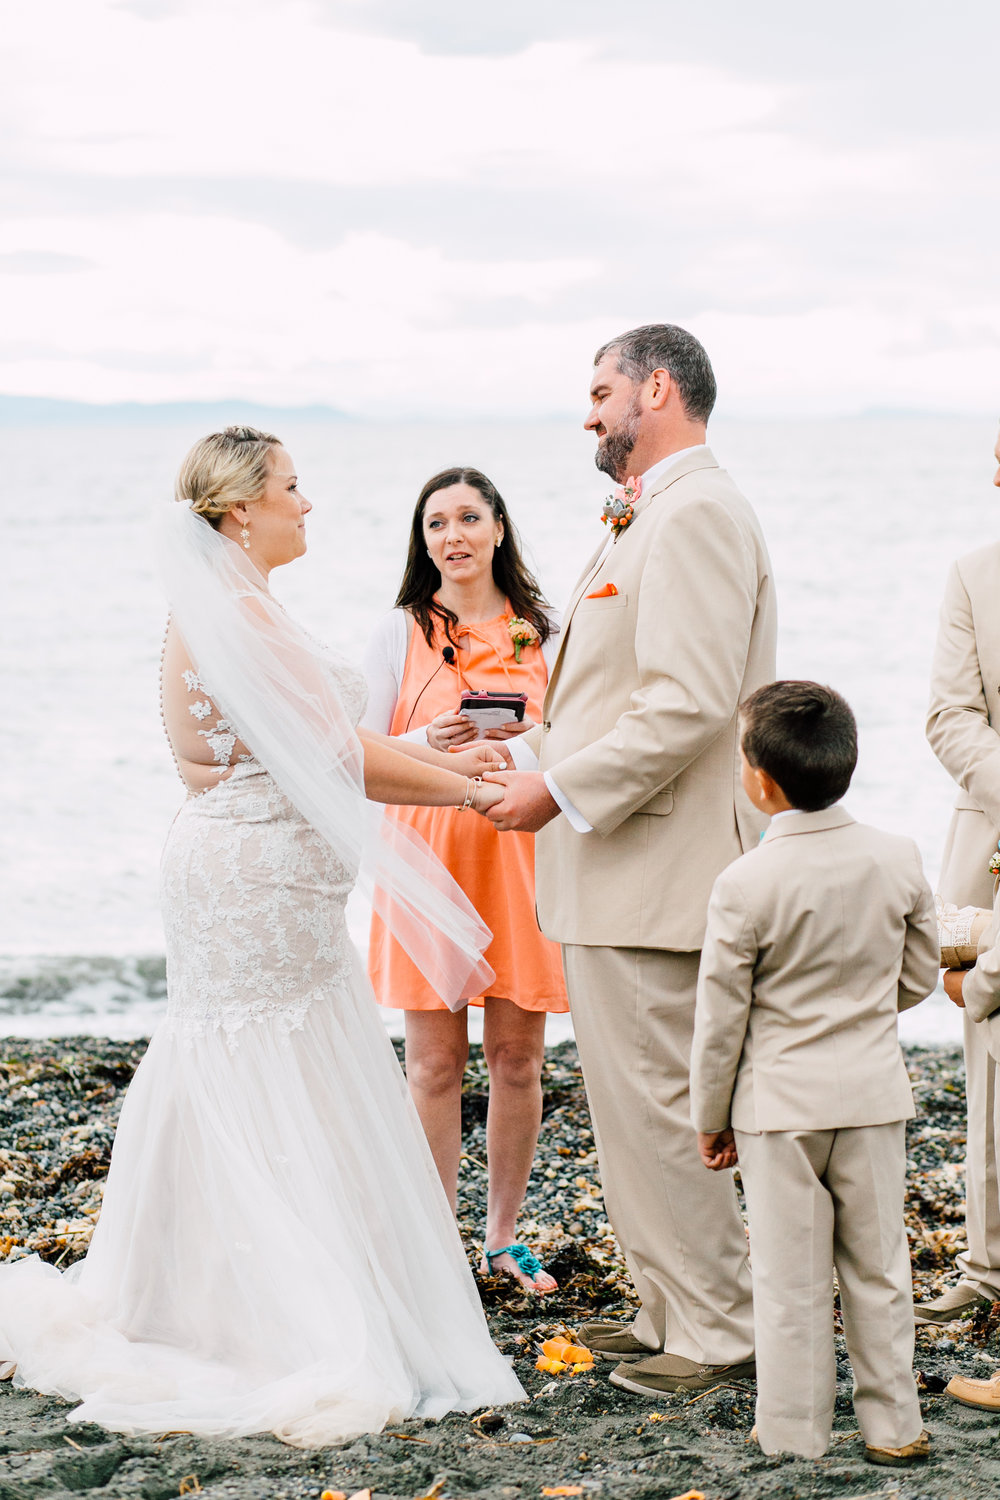 066-bellingham-wedding-photographer-beach-katheryn-moran-elisa-phillip.jpg